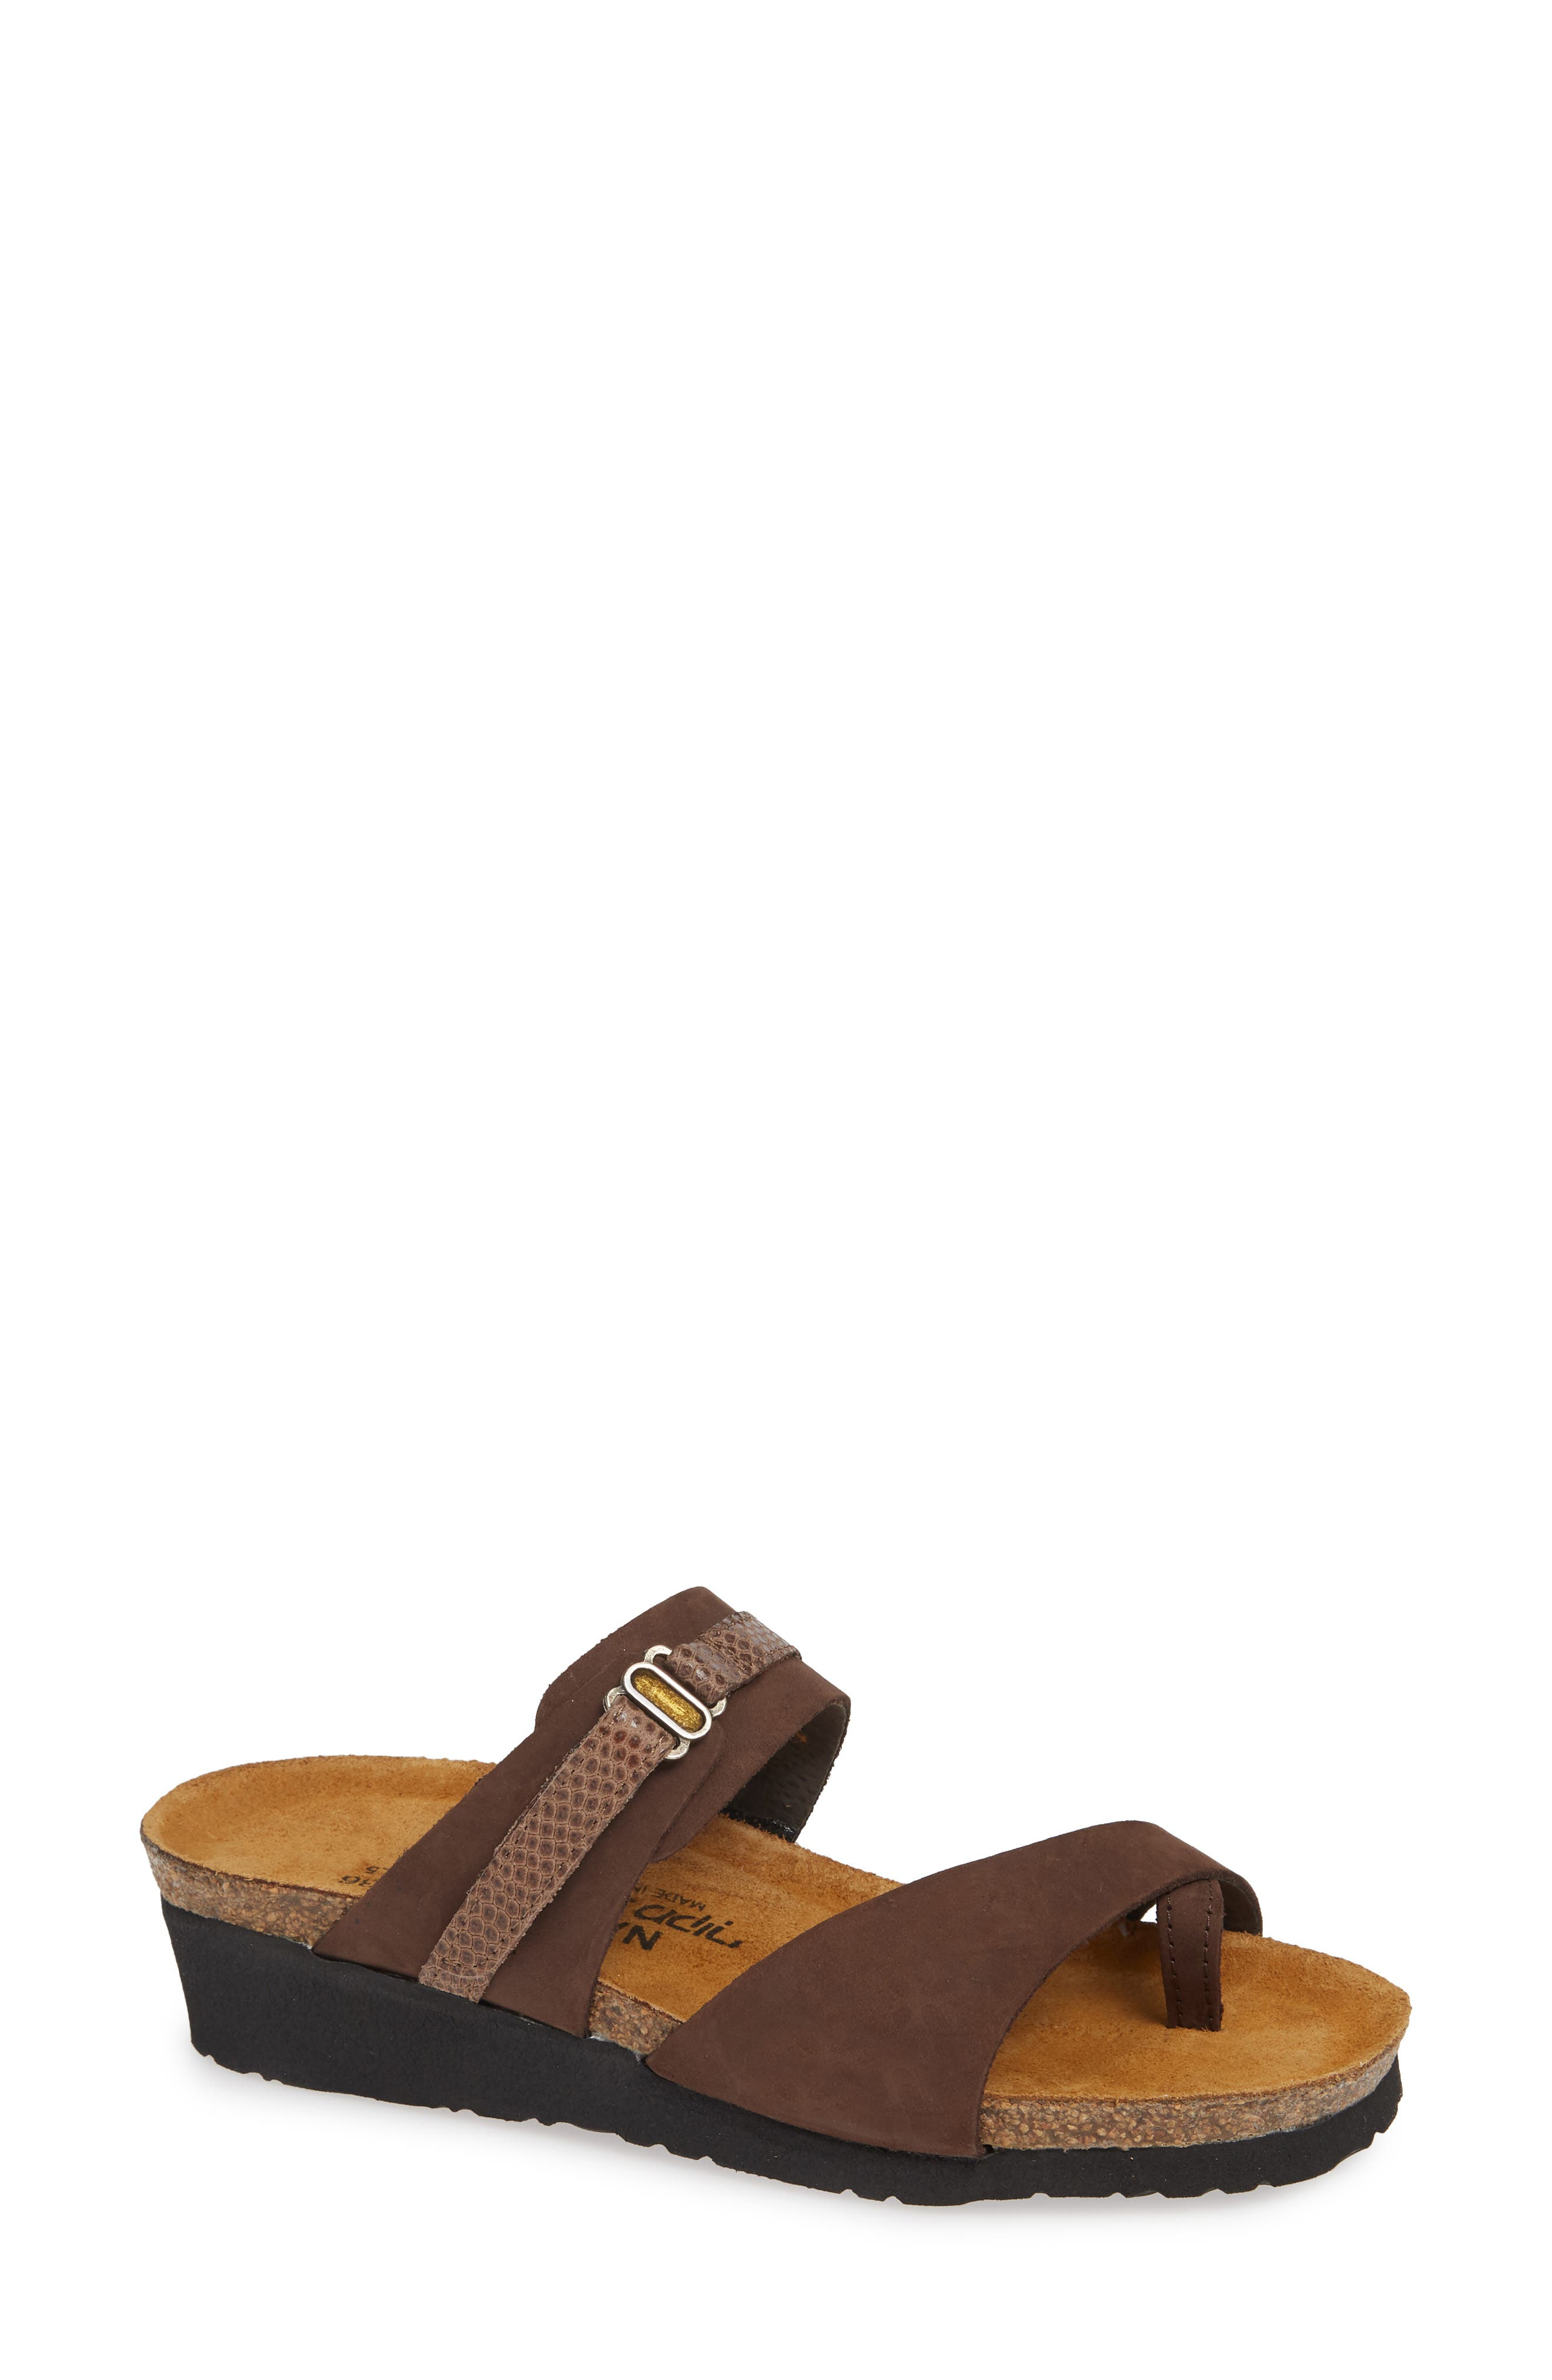 NAOT Jessica Sandal, Main, color, COFFEE BEAN NUBUCK LEATHER